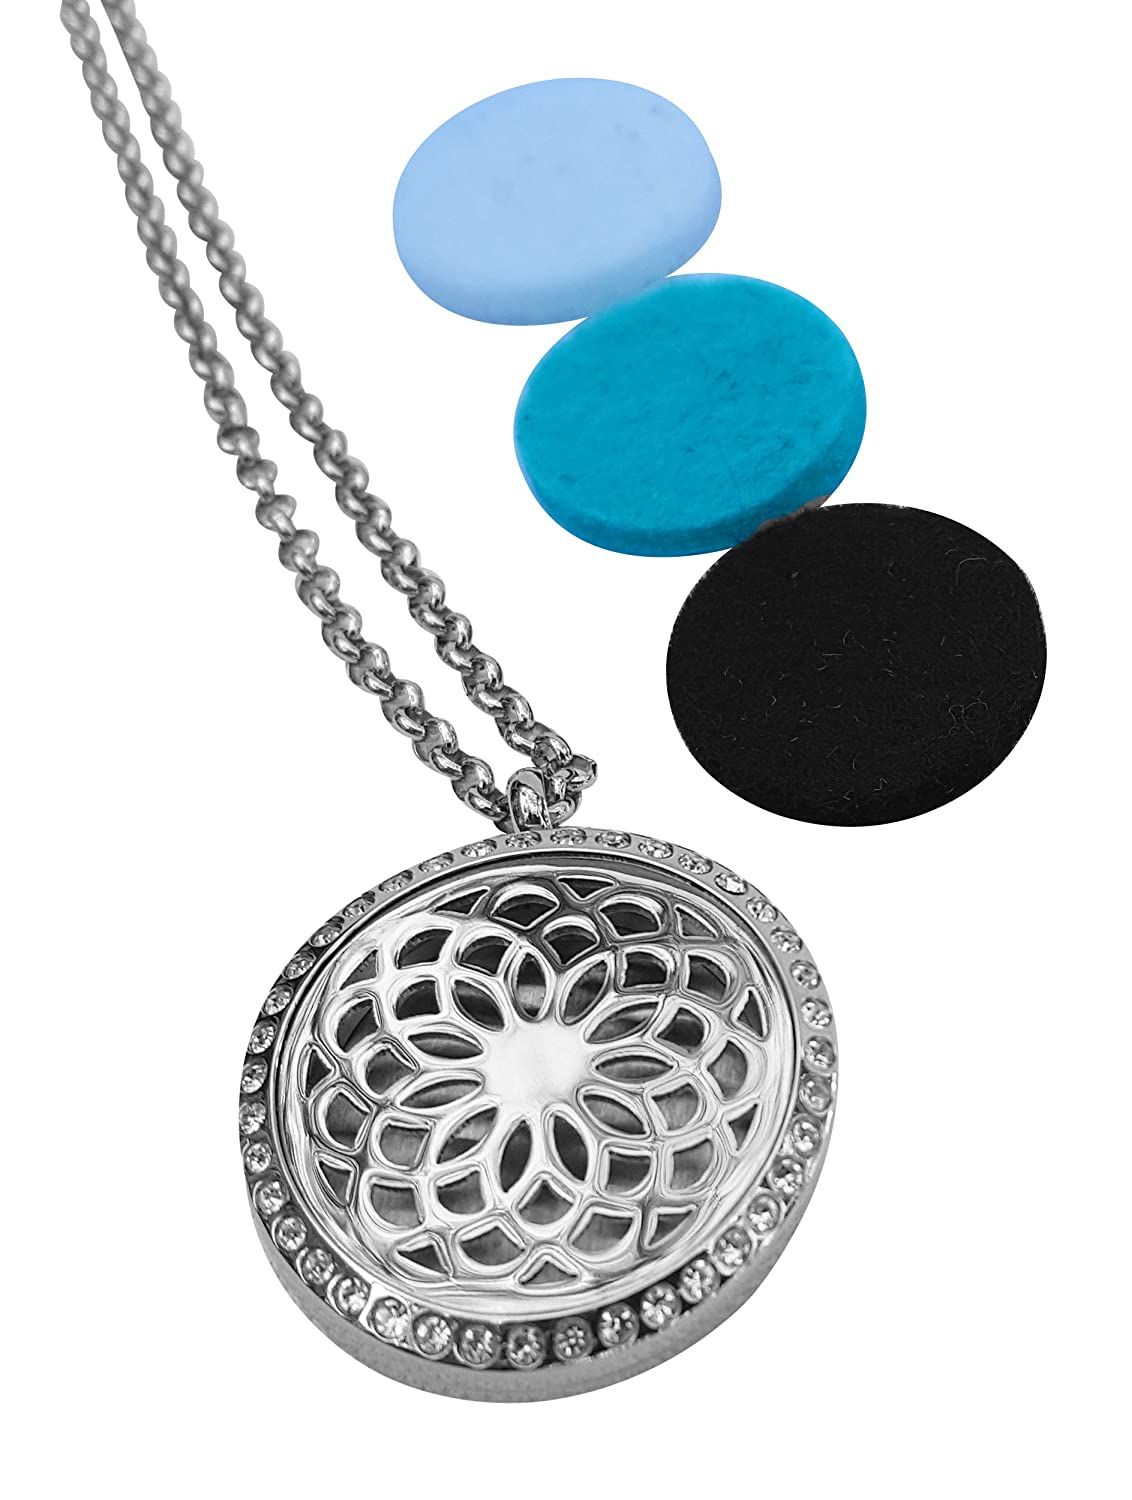 45a6f4c6c6fda Luxury Aromatherapy Essential Oil Diffuser Necklace, Circular Locket  Pendant with crystals by...